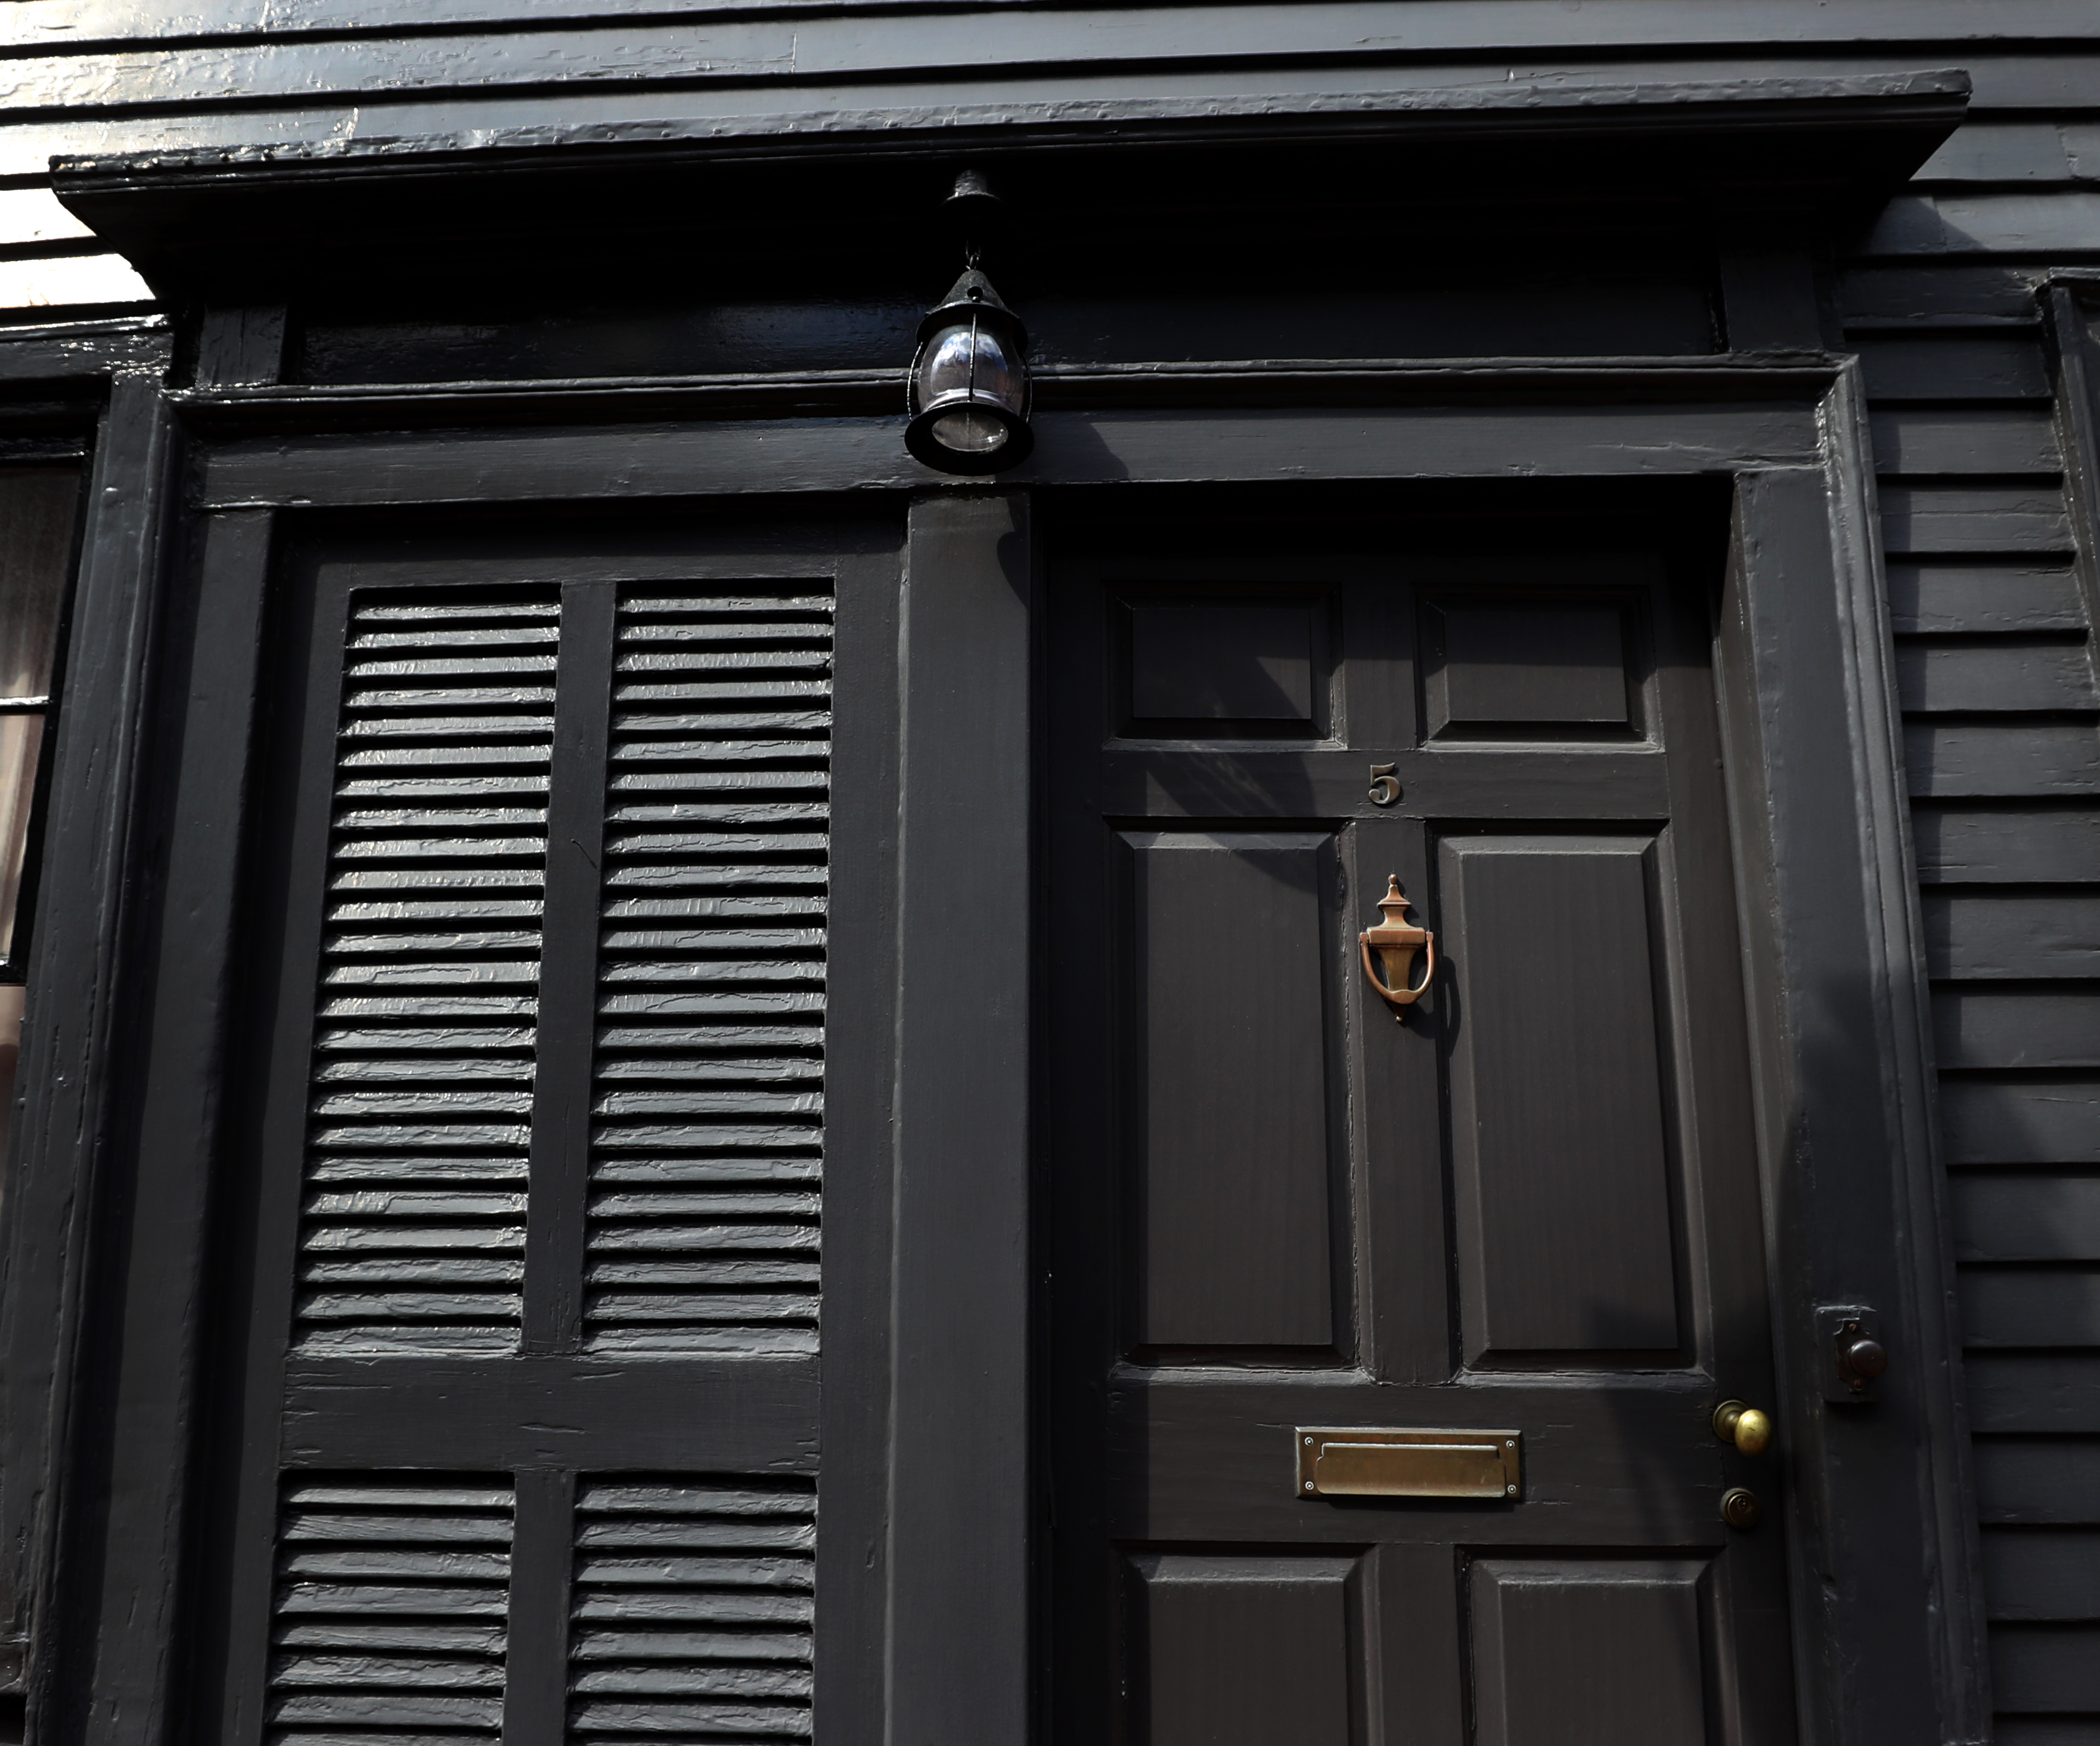 A detail of the George Middleton House, 5 Pinckney St., Boston.